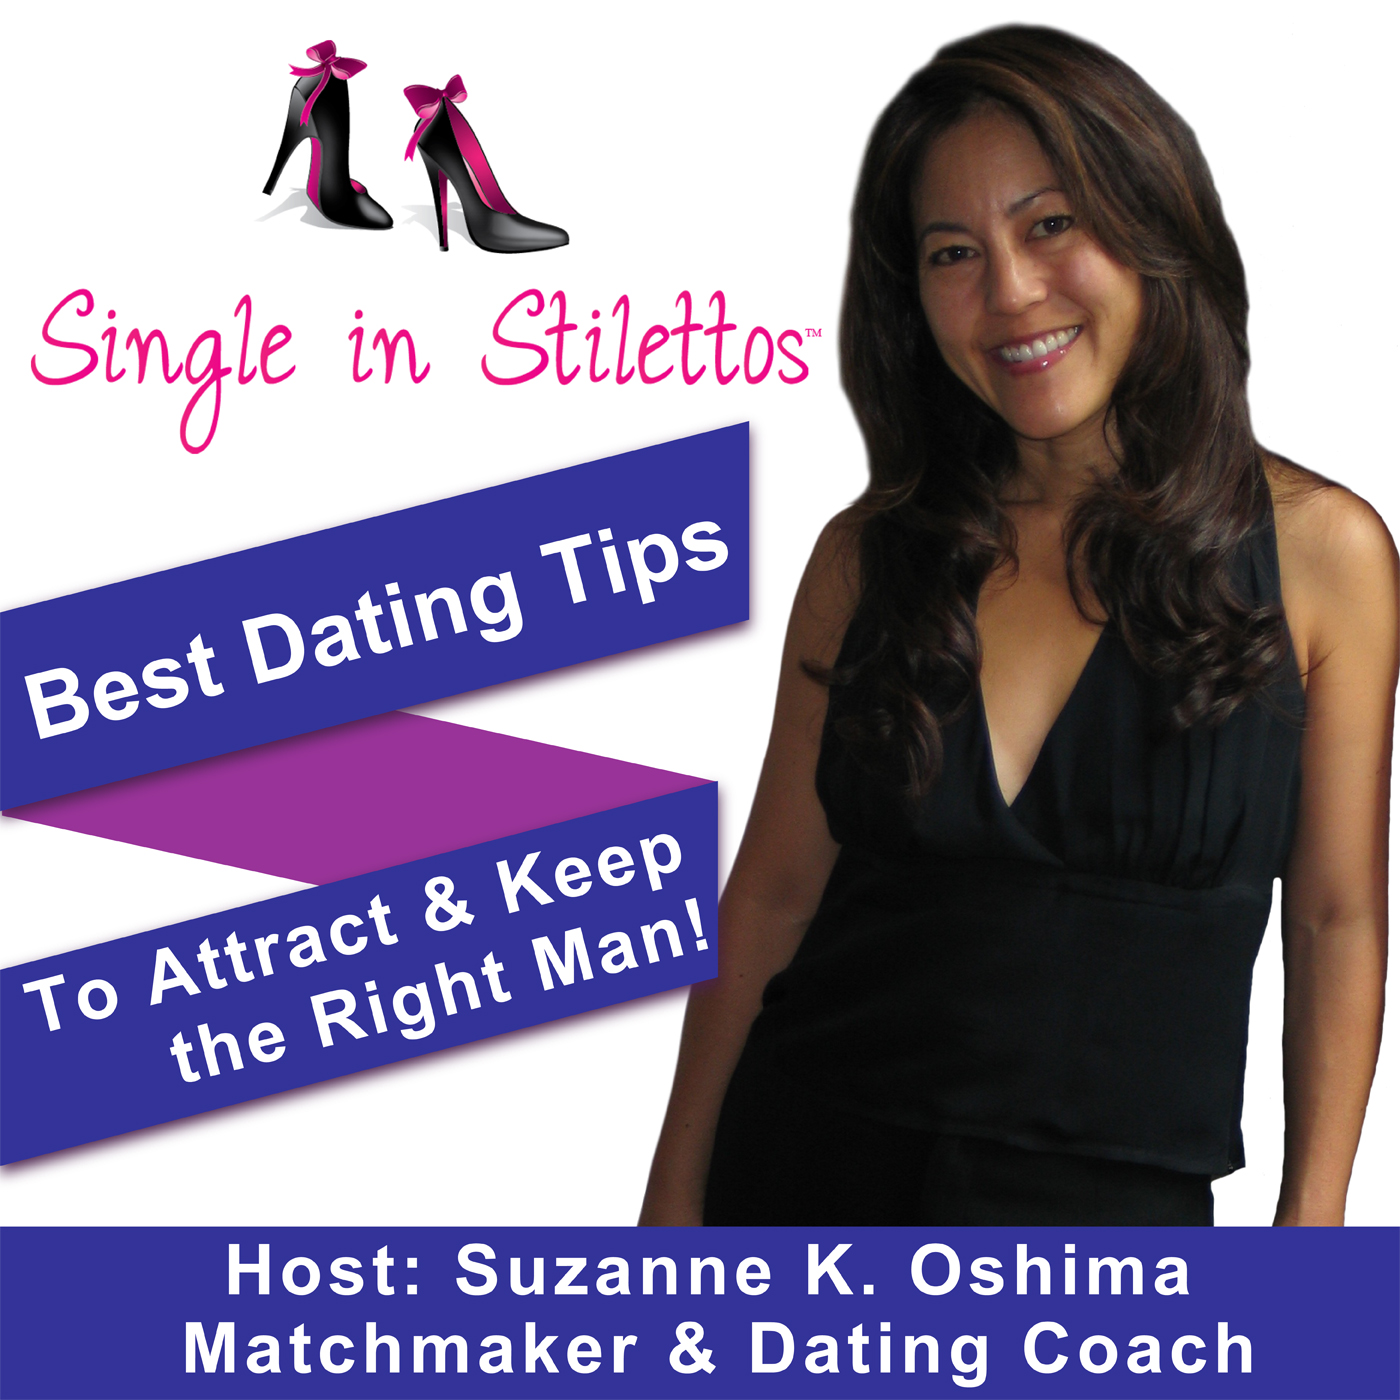 Dating Tips - Dating Advice for Women from Men